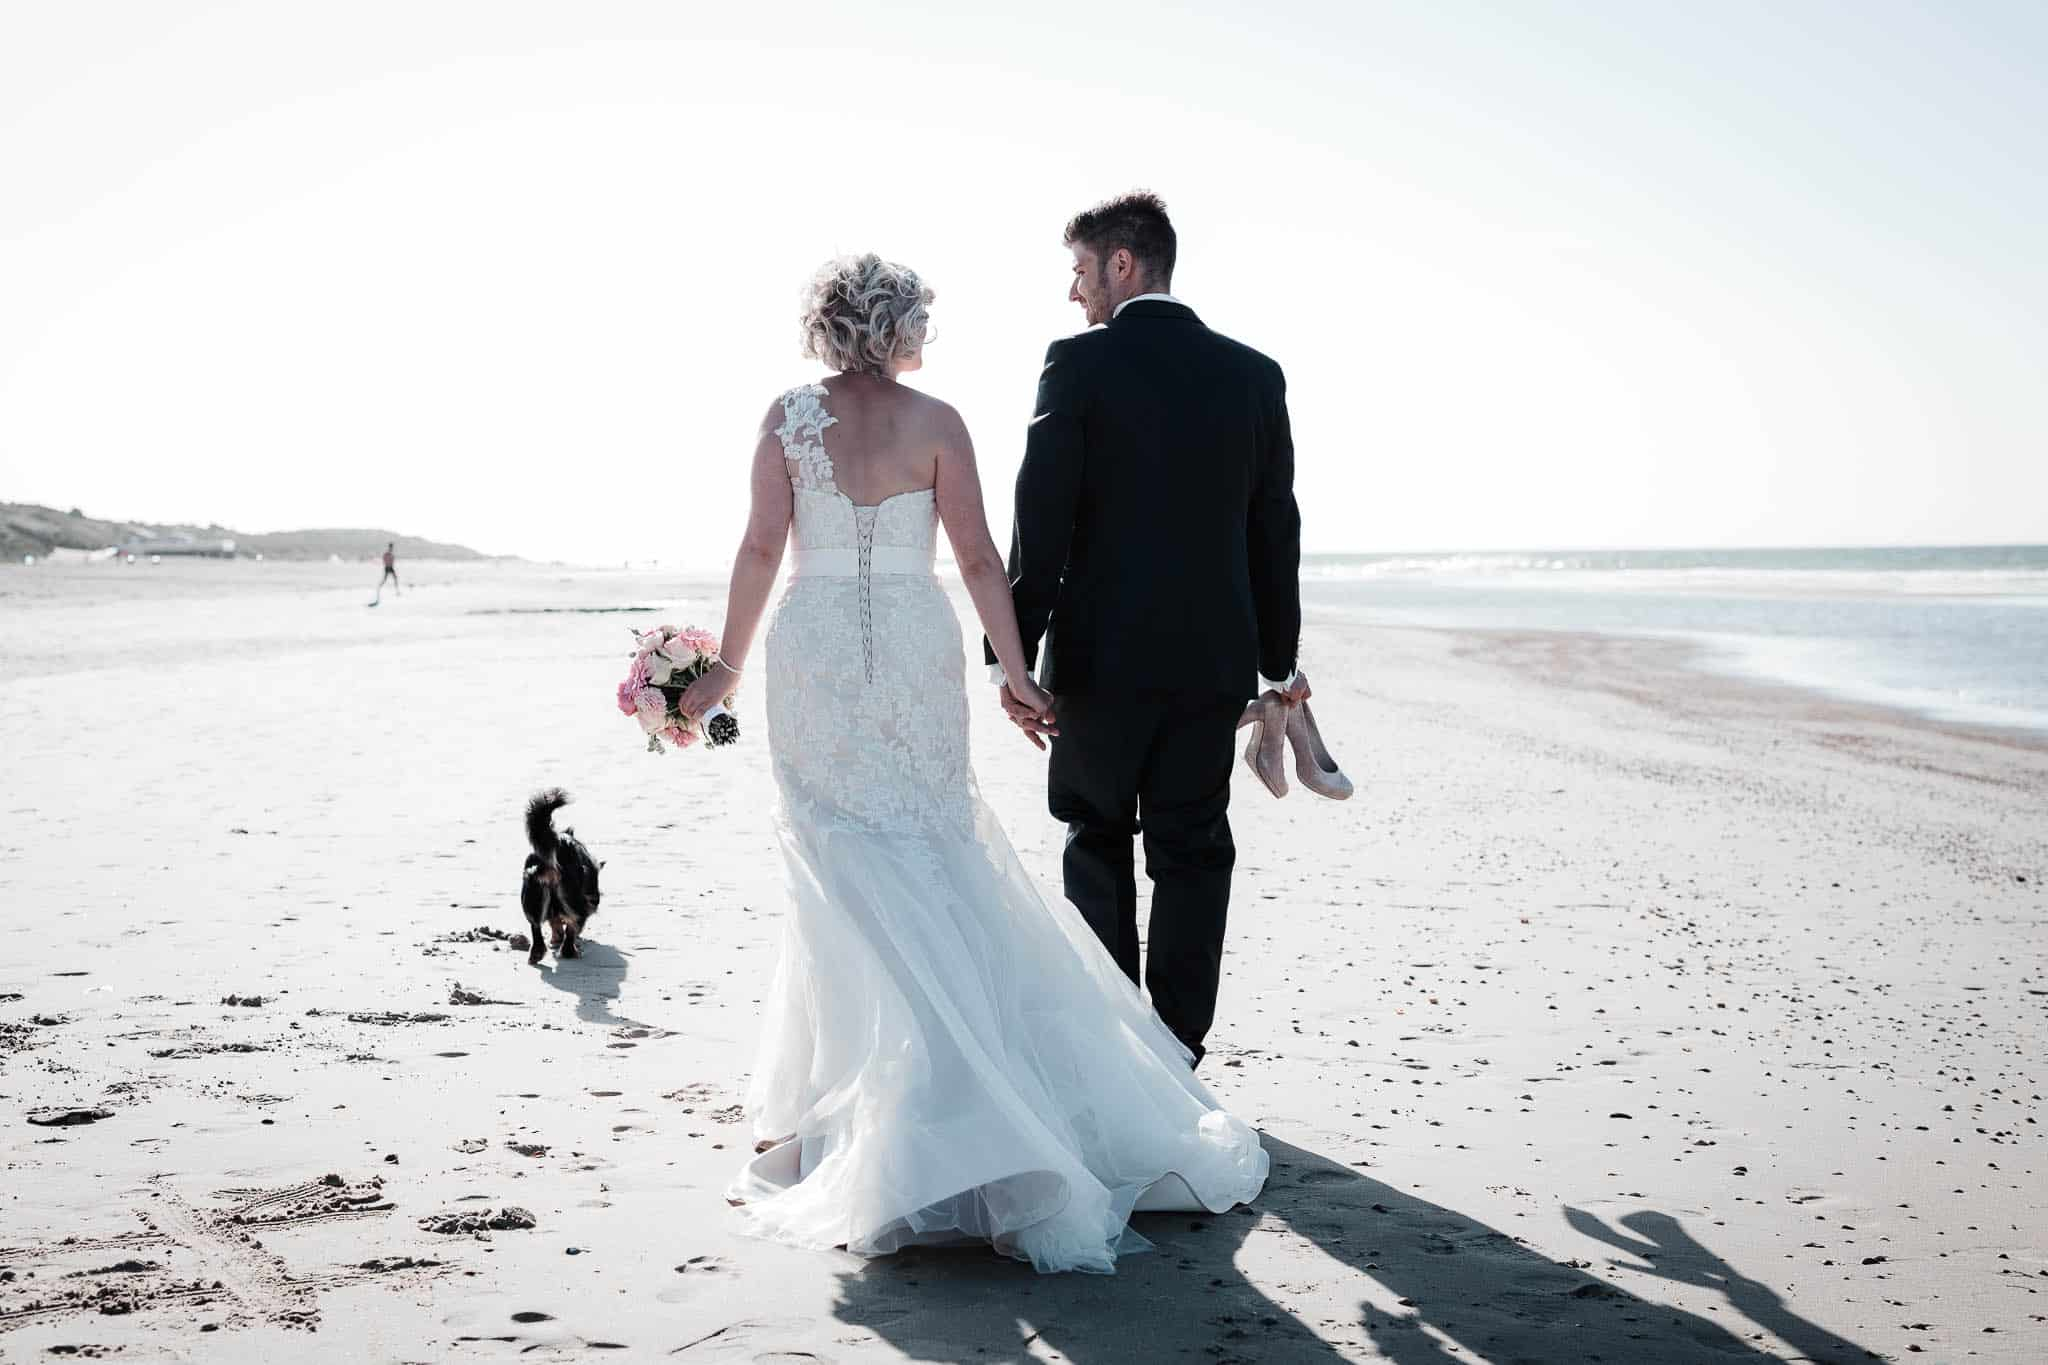 Freie Trauung Renesse, Holland: Lisa & Michael heiraten am Strand